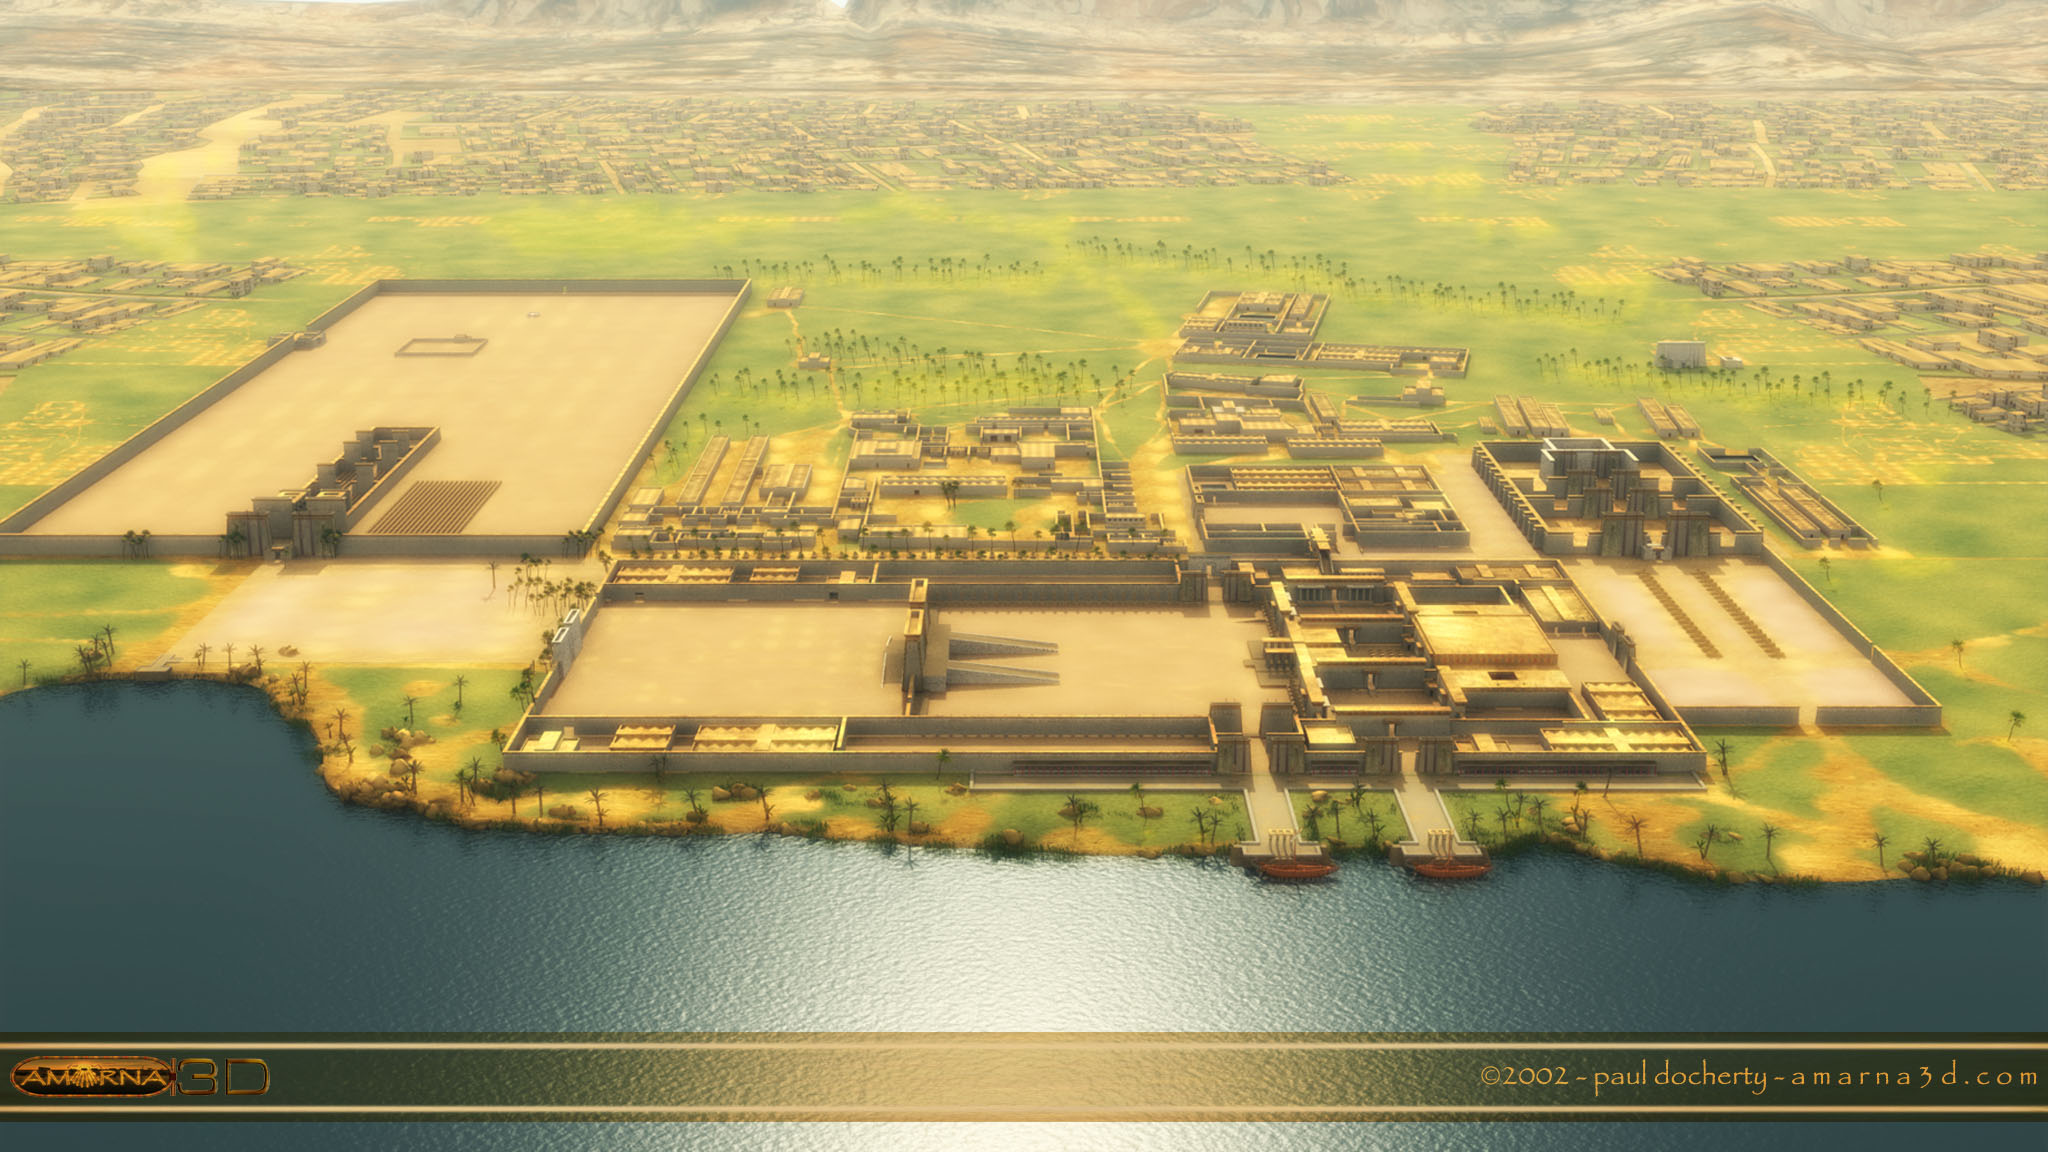 Nile River clipart egyptian civilization  PROJECT GEOGRAPHY EGYPT